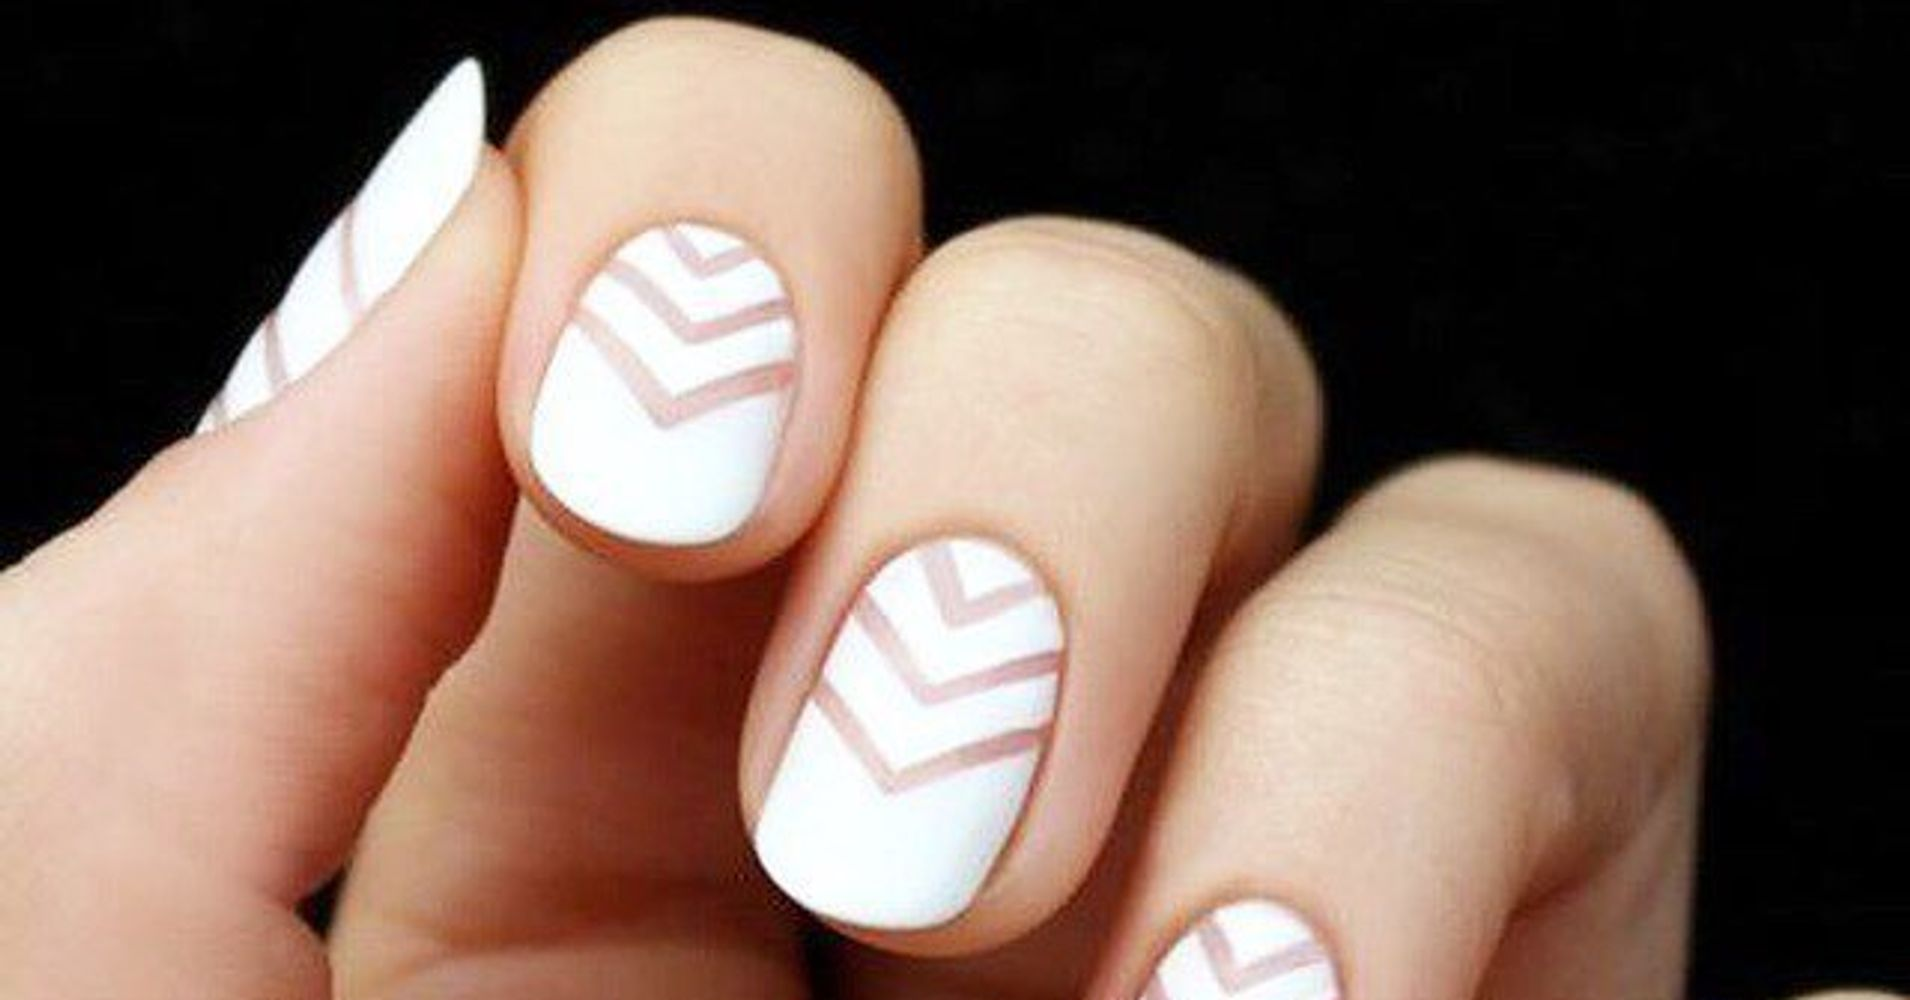 The Best Manicures For People With Tiny Nails | HuffPost